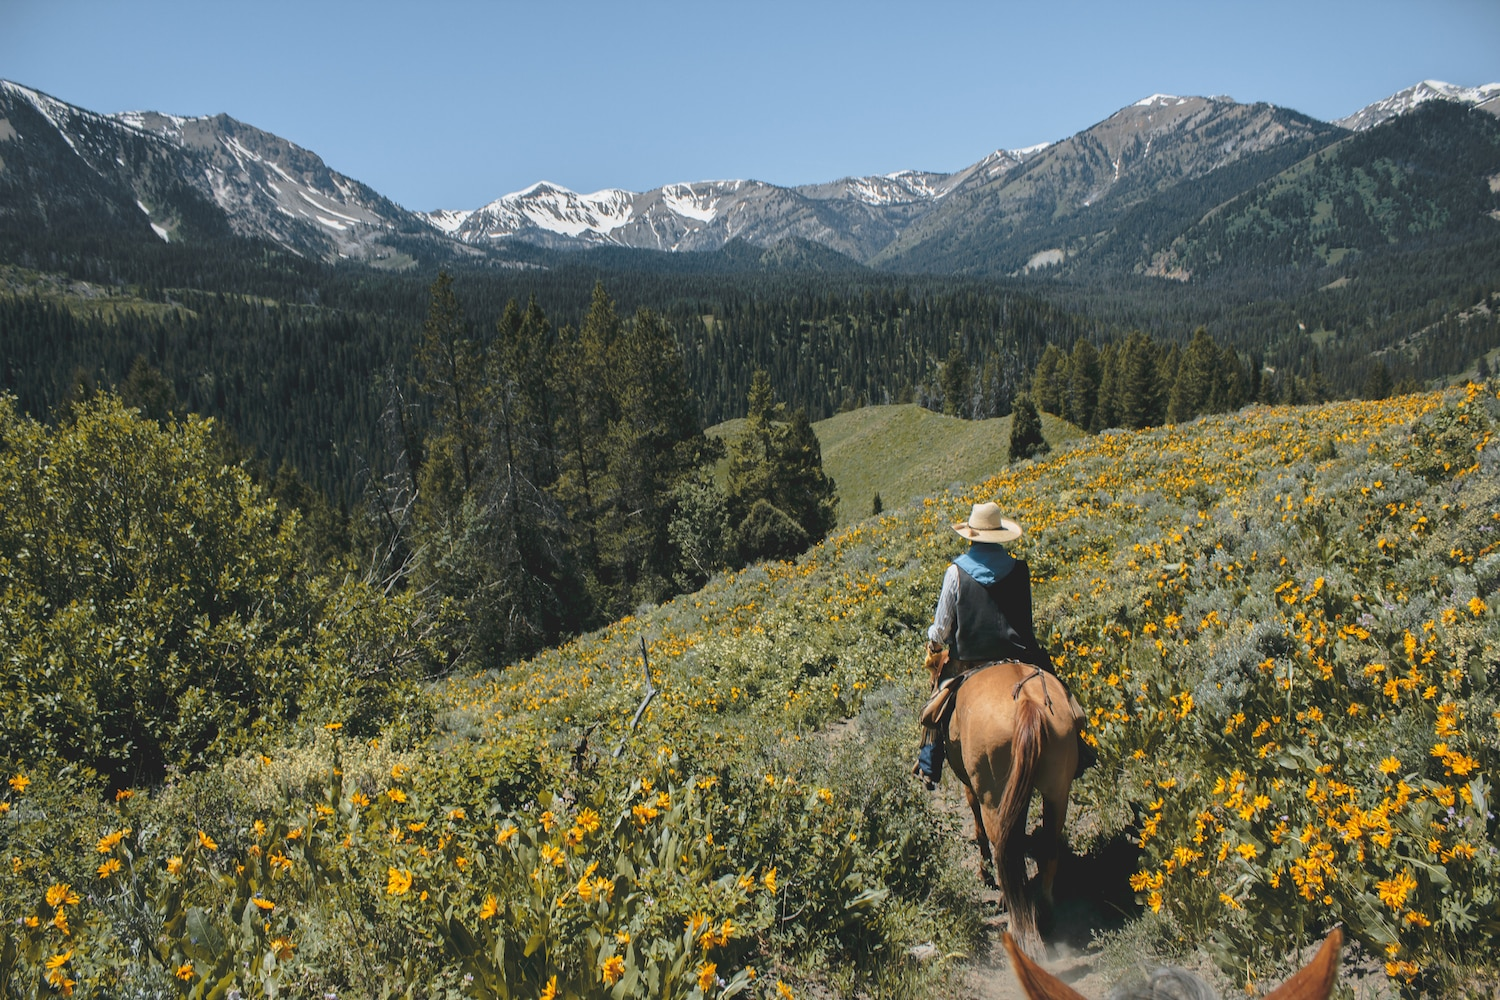 Horseback riding through the wildflowers in the Grand Teton Moutain range.